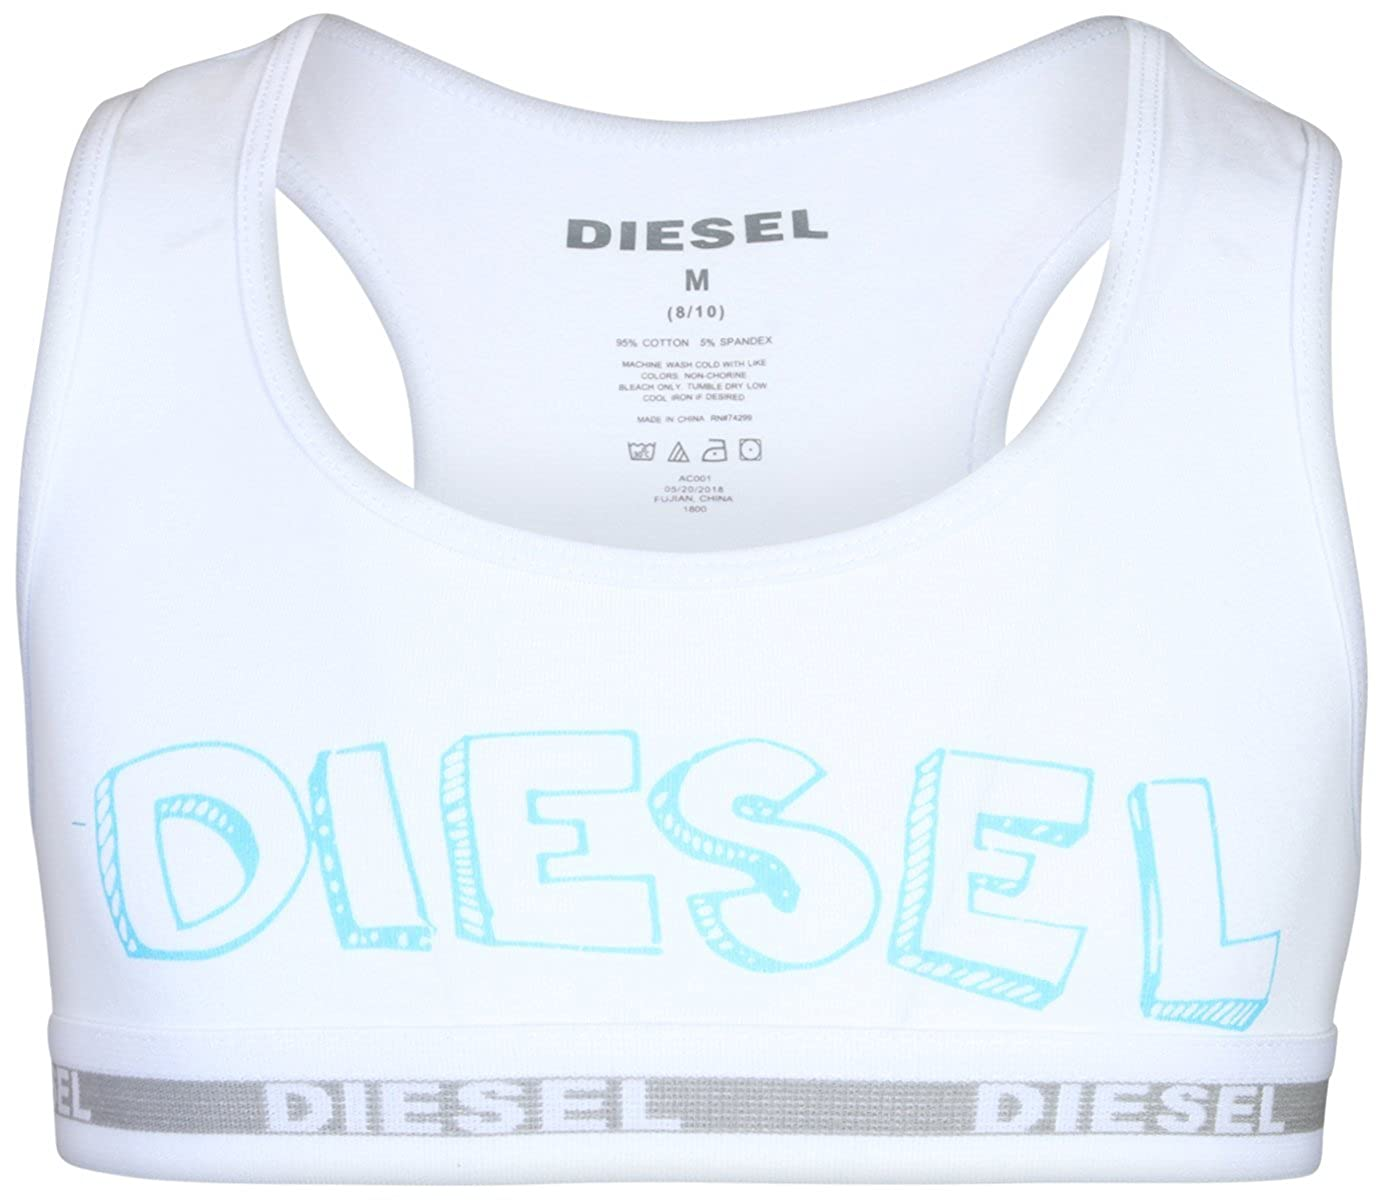 4 Pack Diesel Girls Cotton//Spandex Racerback Sports Training Bra